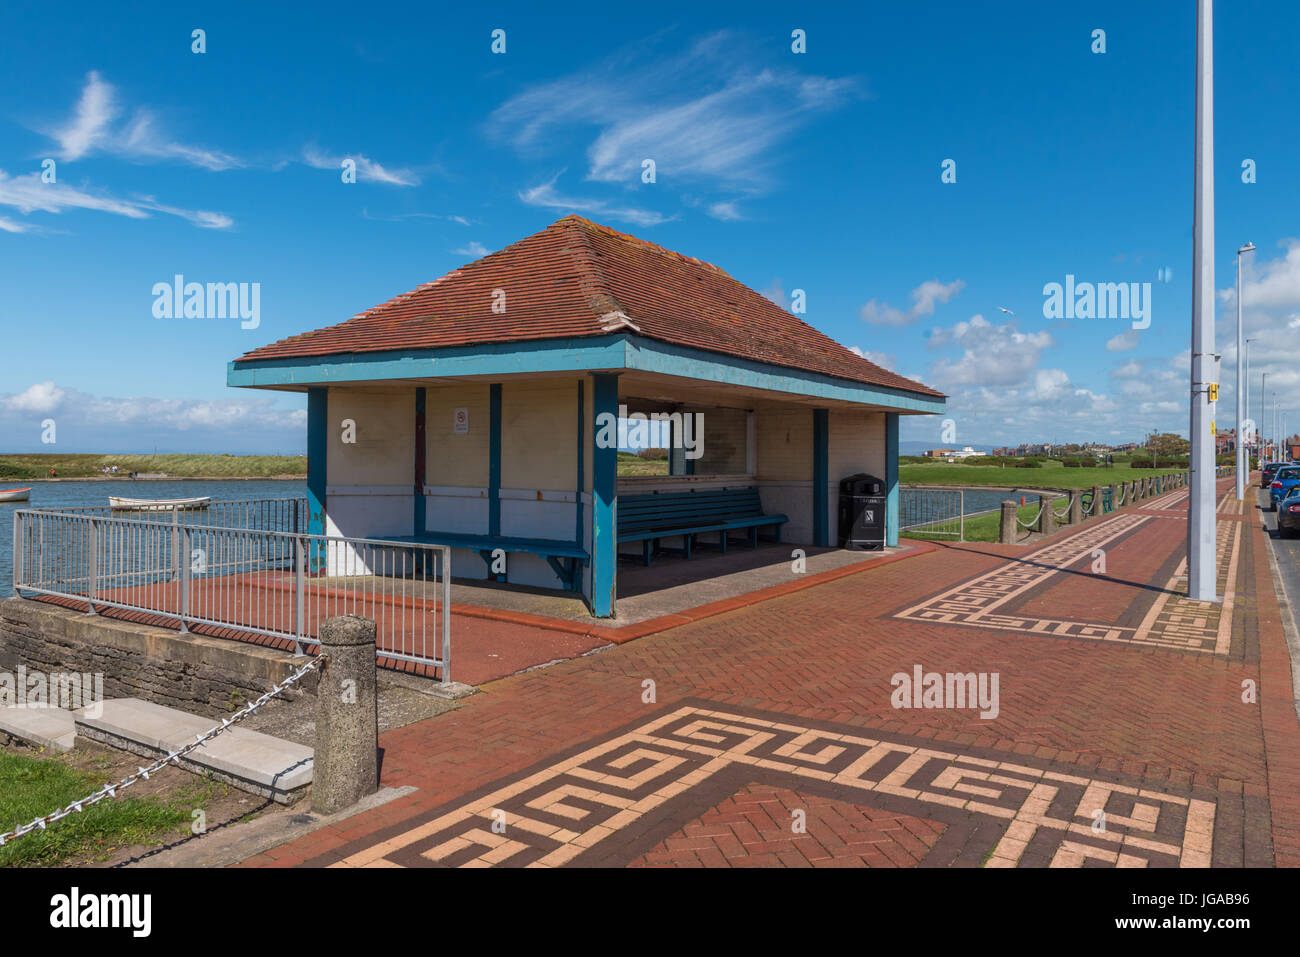 A shelter on the Esplanade at Fleetwood in Lancashire - Stock Image